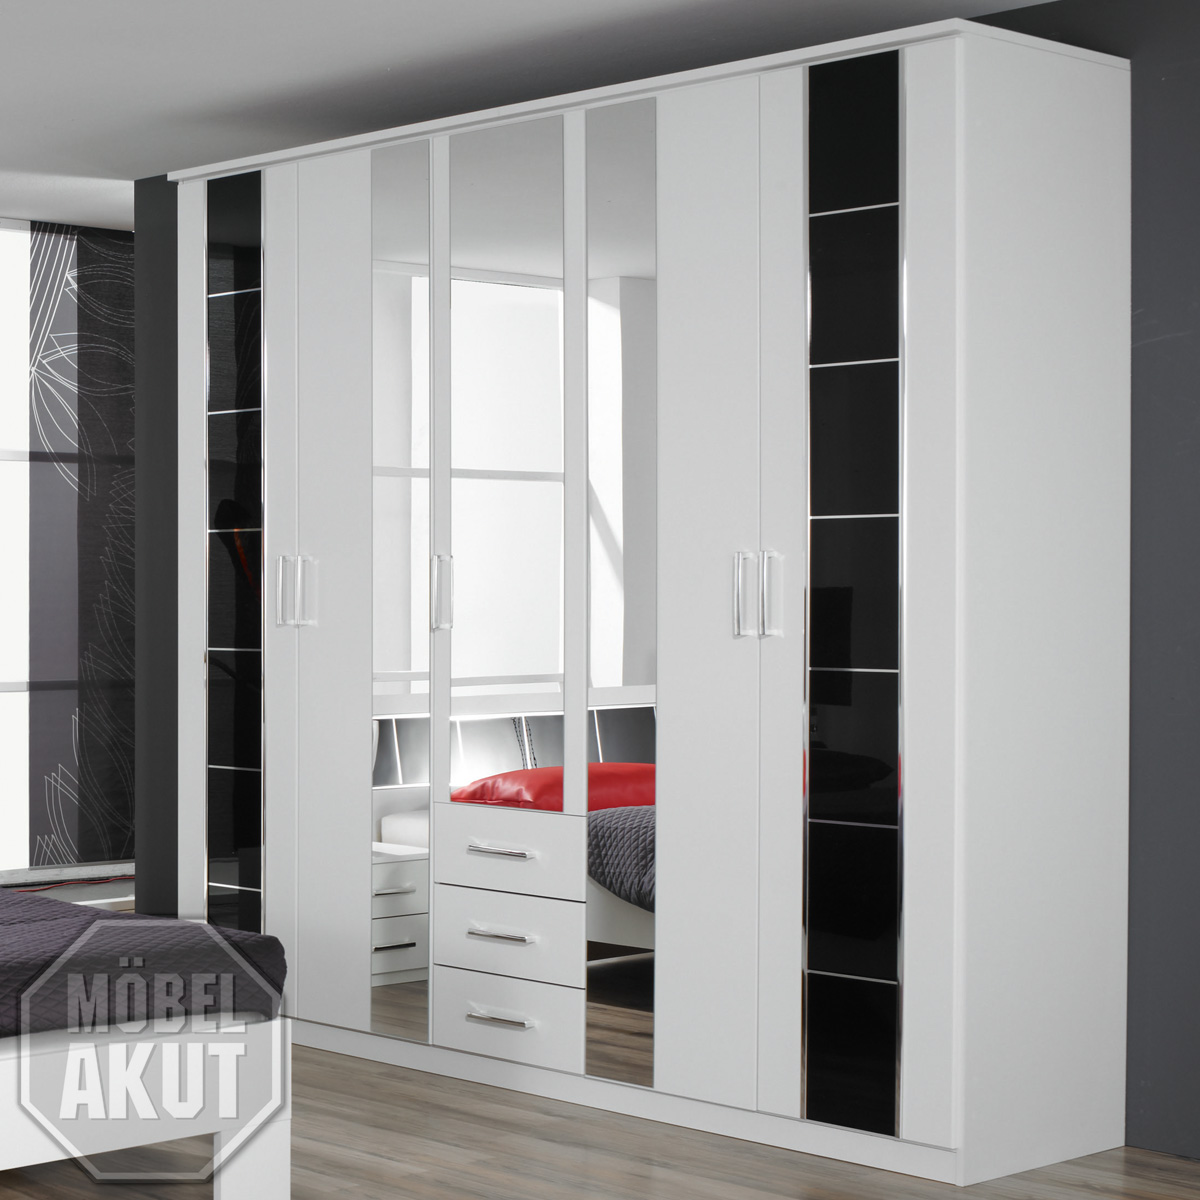 kleiderschrank aarau weiss schwarz hochglanz b 226. Black Bedroom Furniture Sets. Home Design Ideas